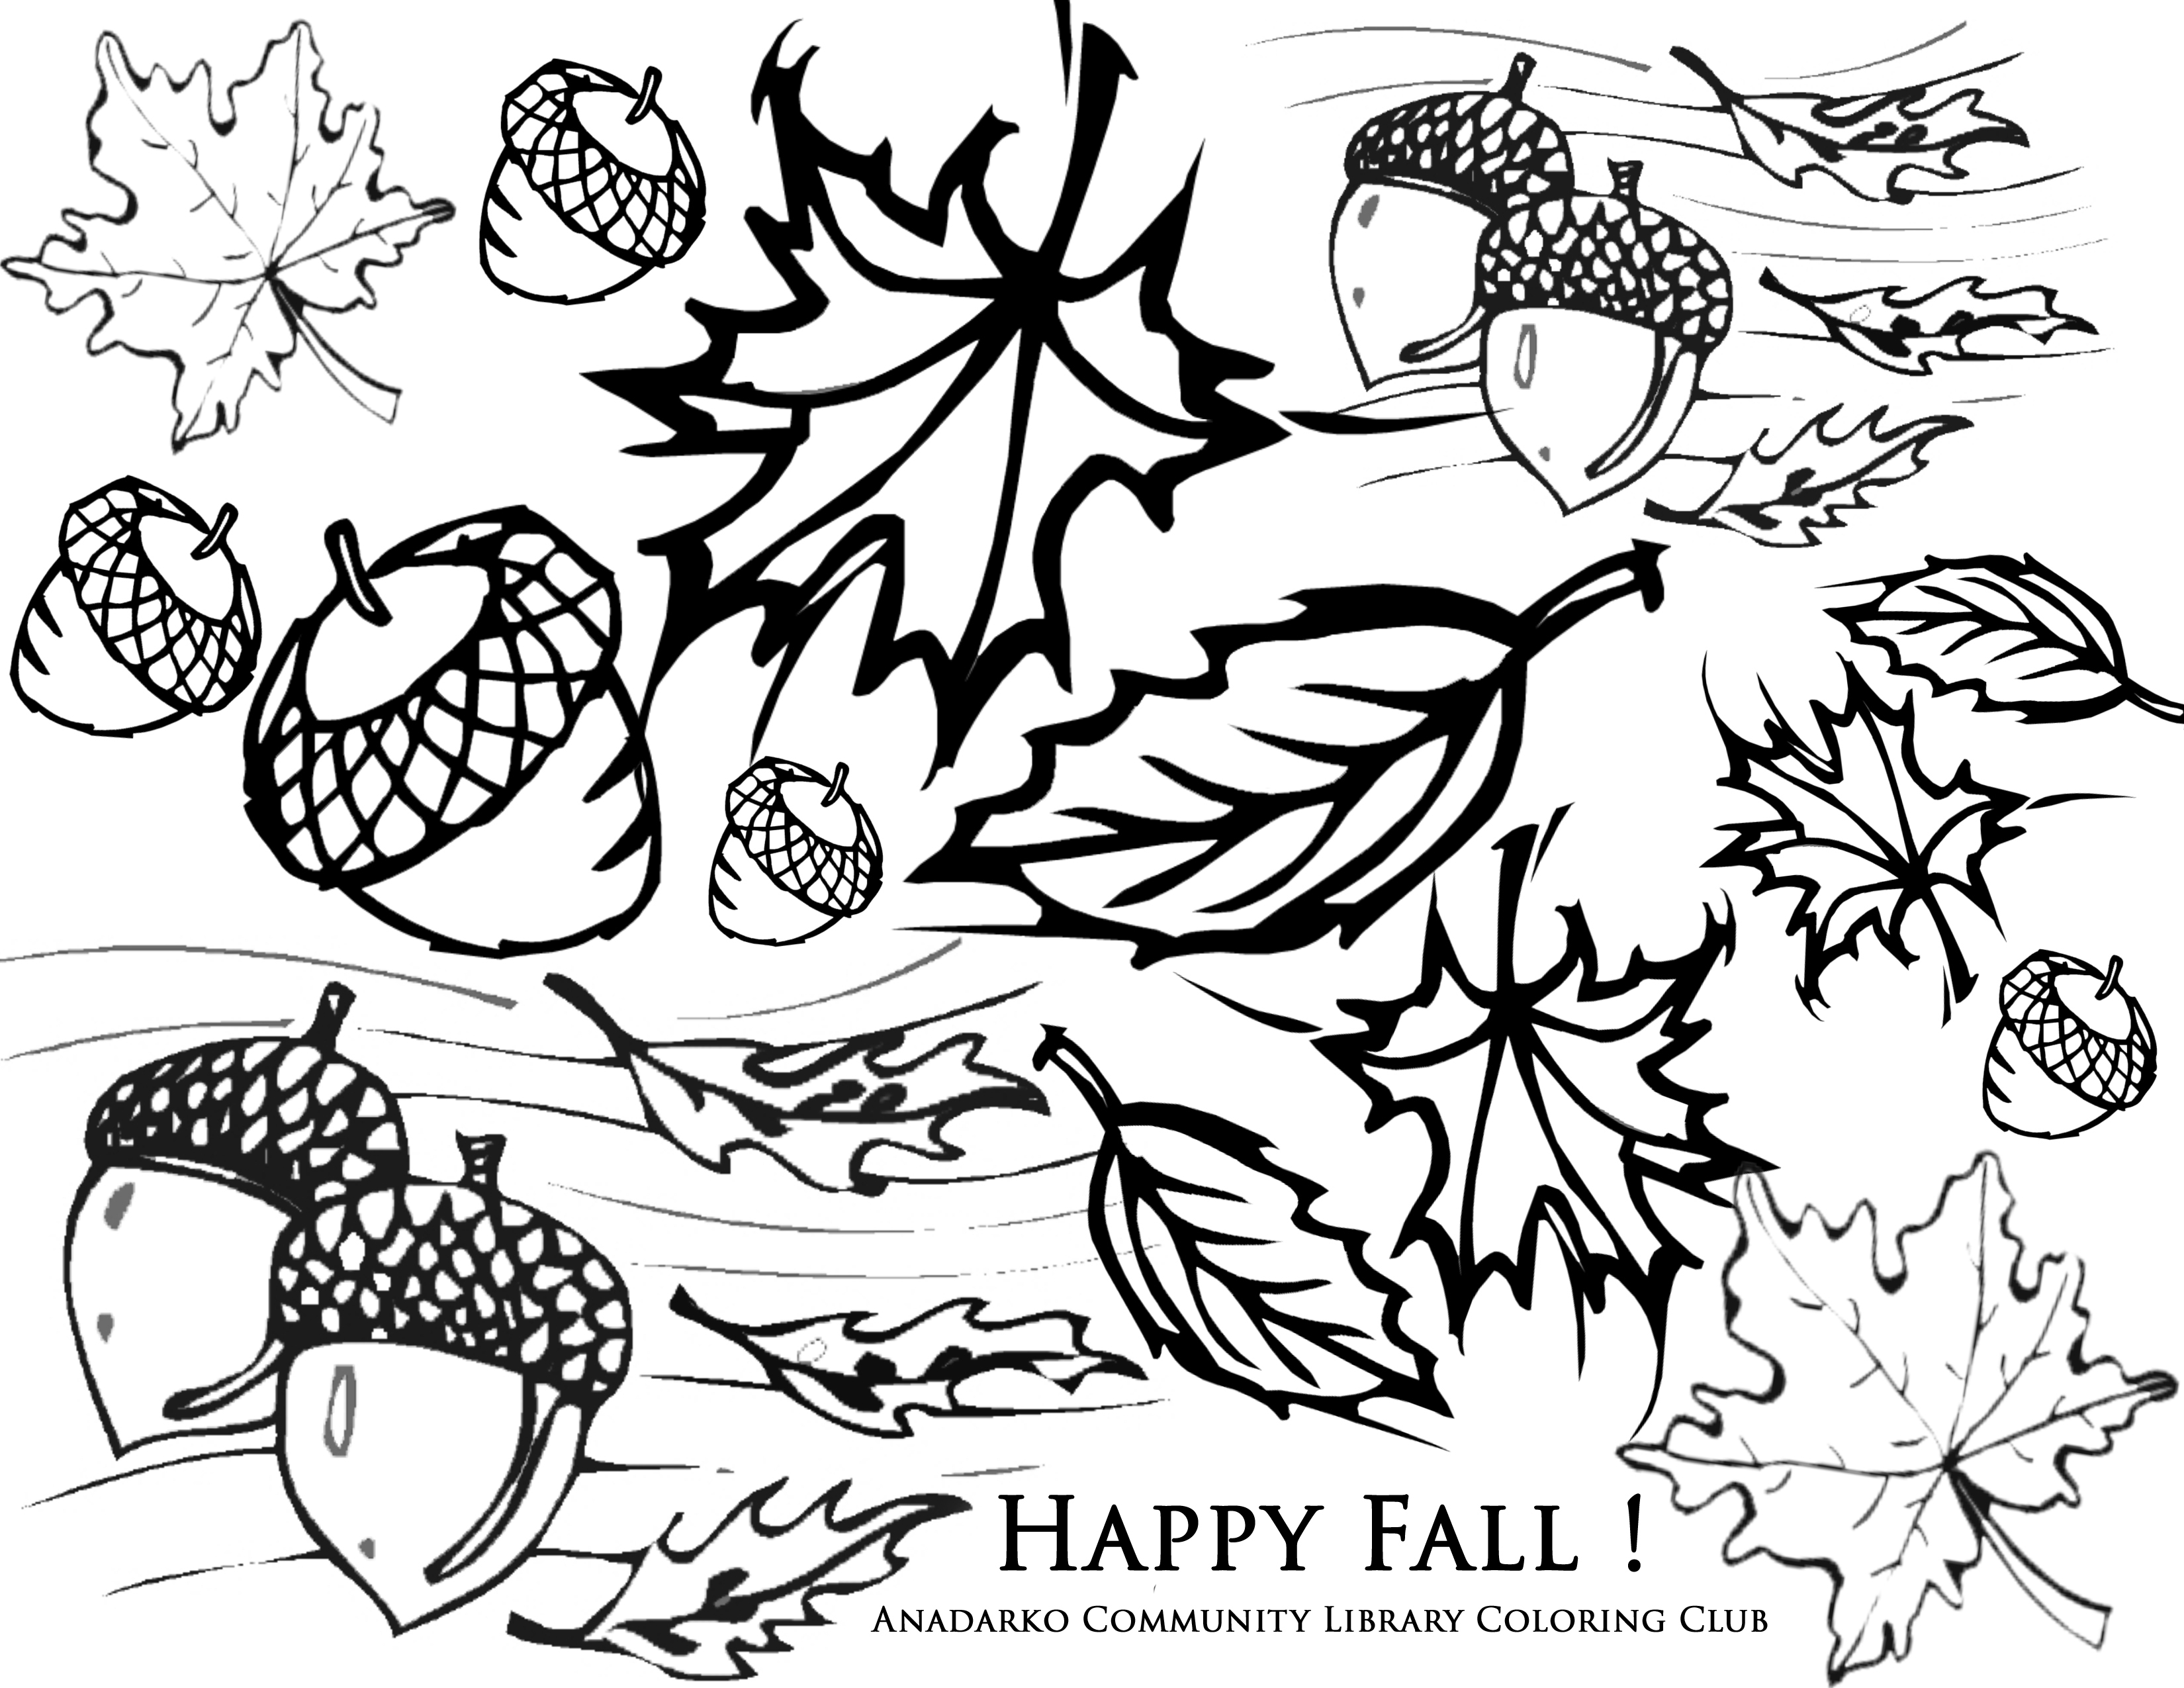 Coloring Pages ~ Boy And Autumn Leaves Coloringges For Kids Fall - Free Fall Printable Coloring Sheets